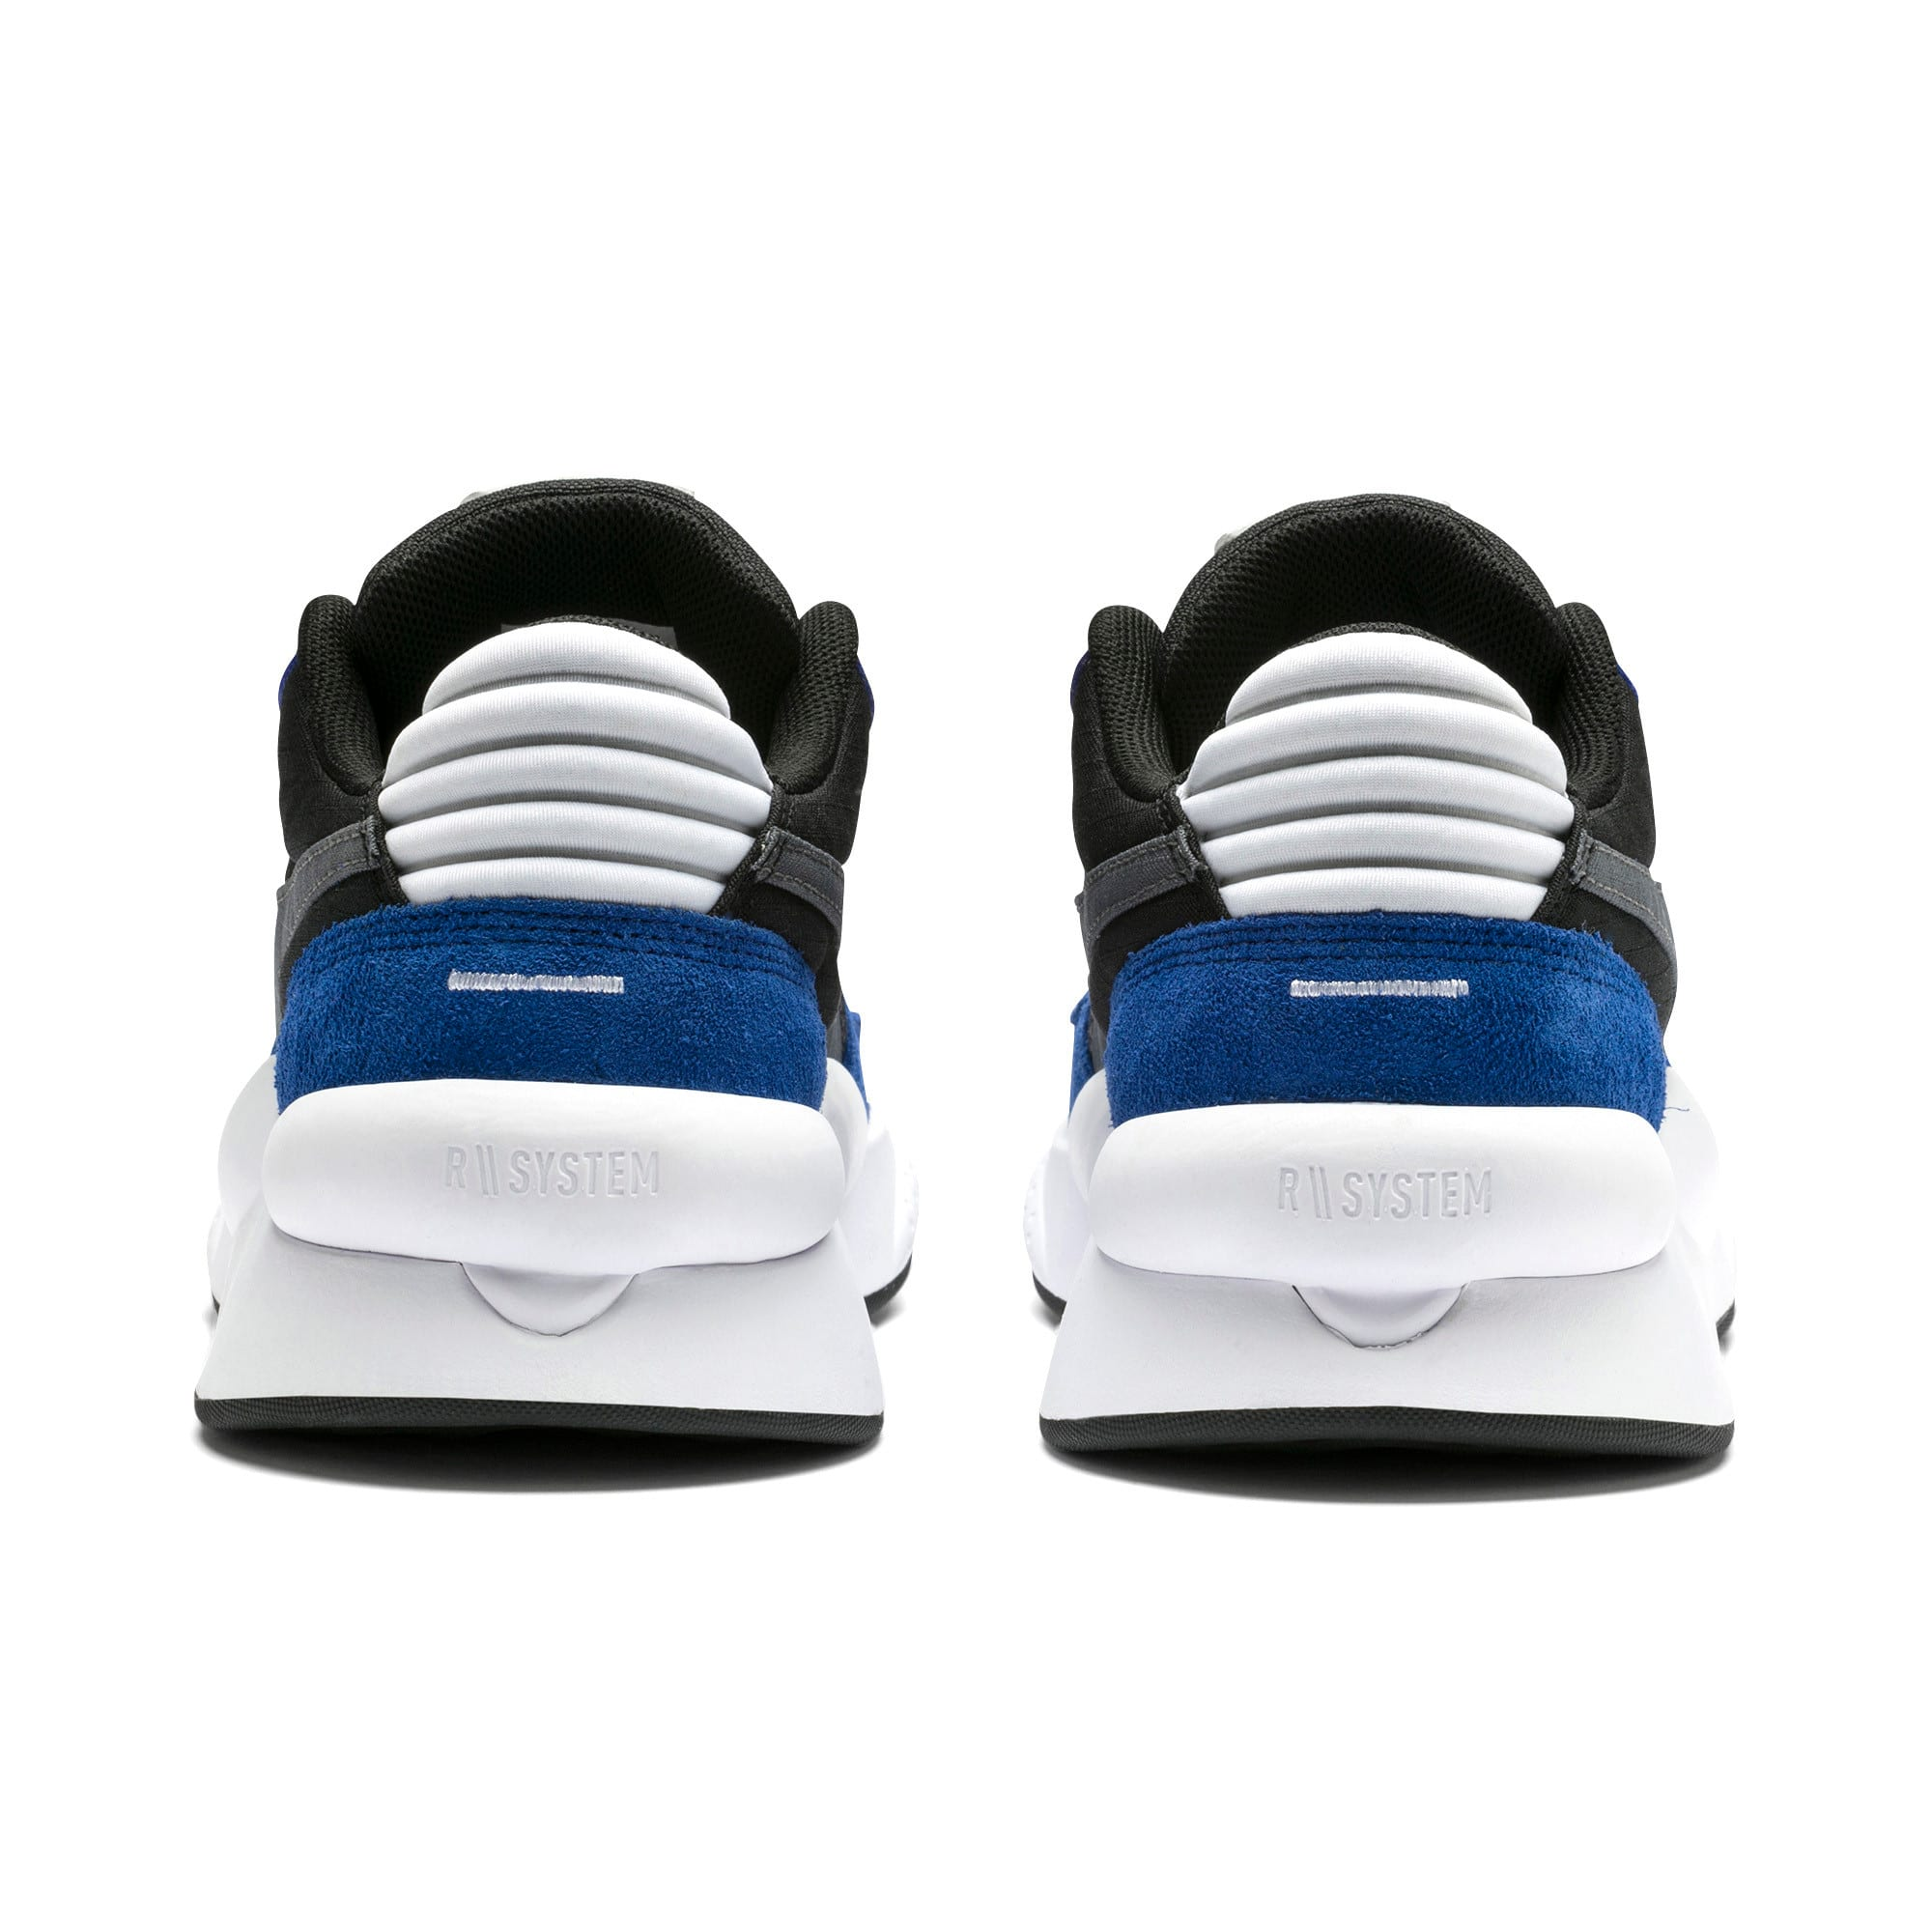 Thumbnail 3 of RS 9.8 Space Youth Trainers, Puma Black-Galaxy Blue, medium